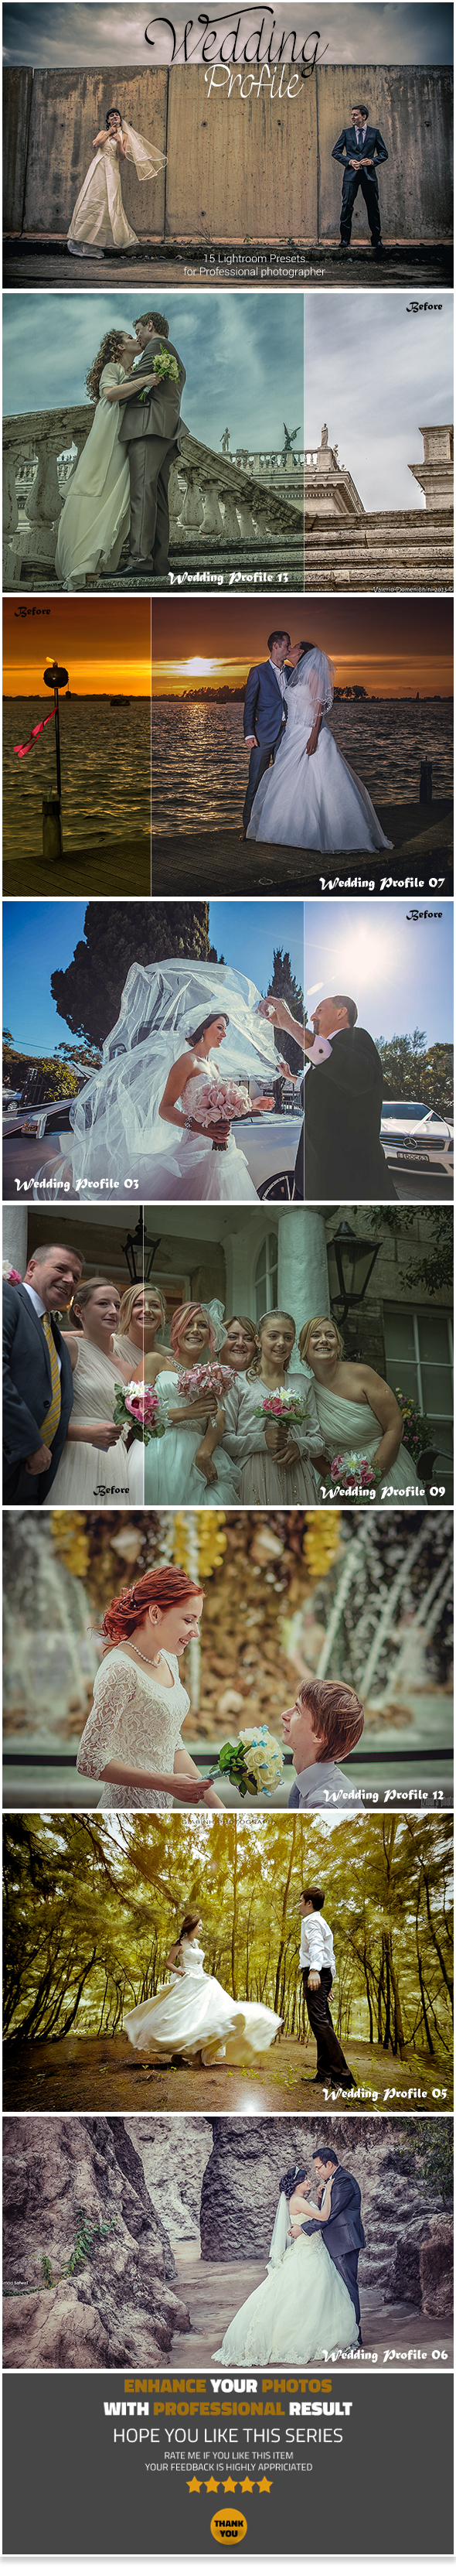 14 Wedding Profile Lightroom Presets - Lightroom Presets Add-ons